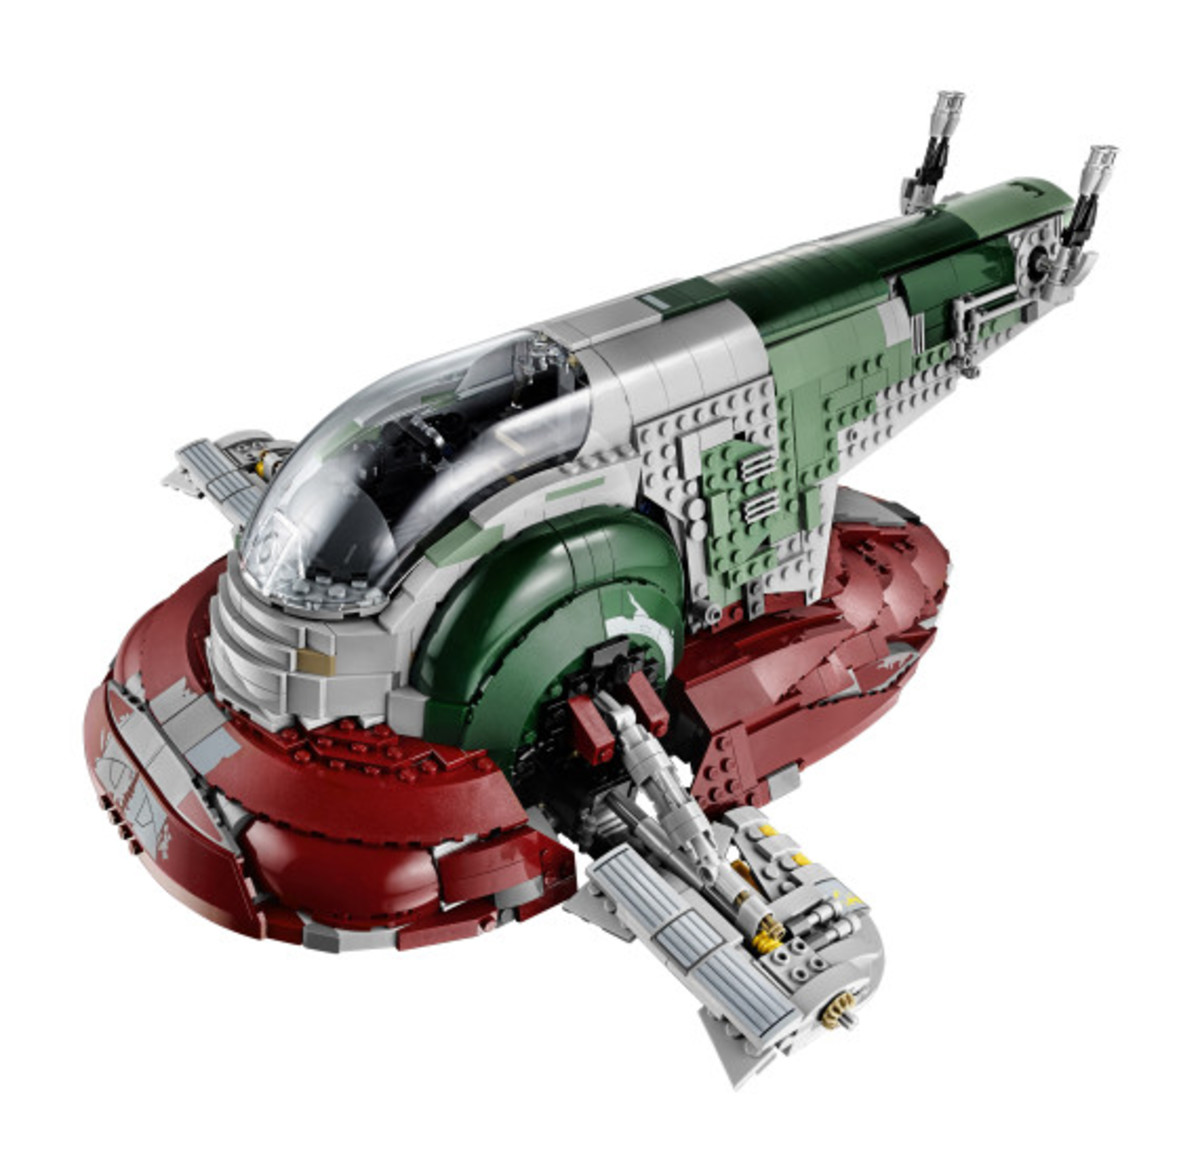 Star Wars x LEGO Ultimate Collector's Series: Boba Fett's Slave I Kit | Release Info - 1